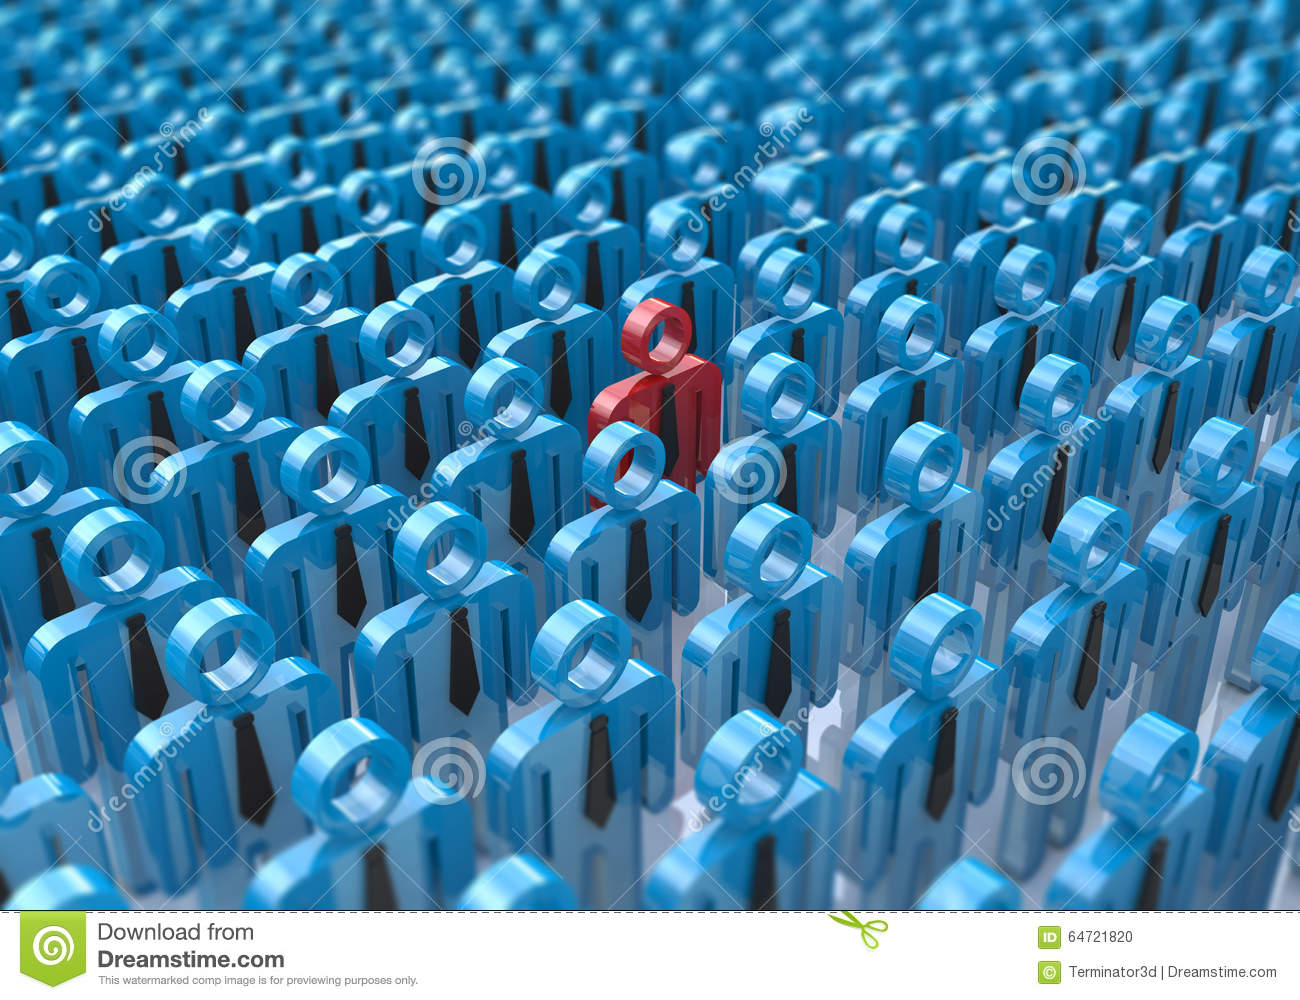 Creative abstract individuality, uniqueness and leadership business concept: single red 3D people figure in crowded group of blue